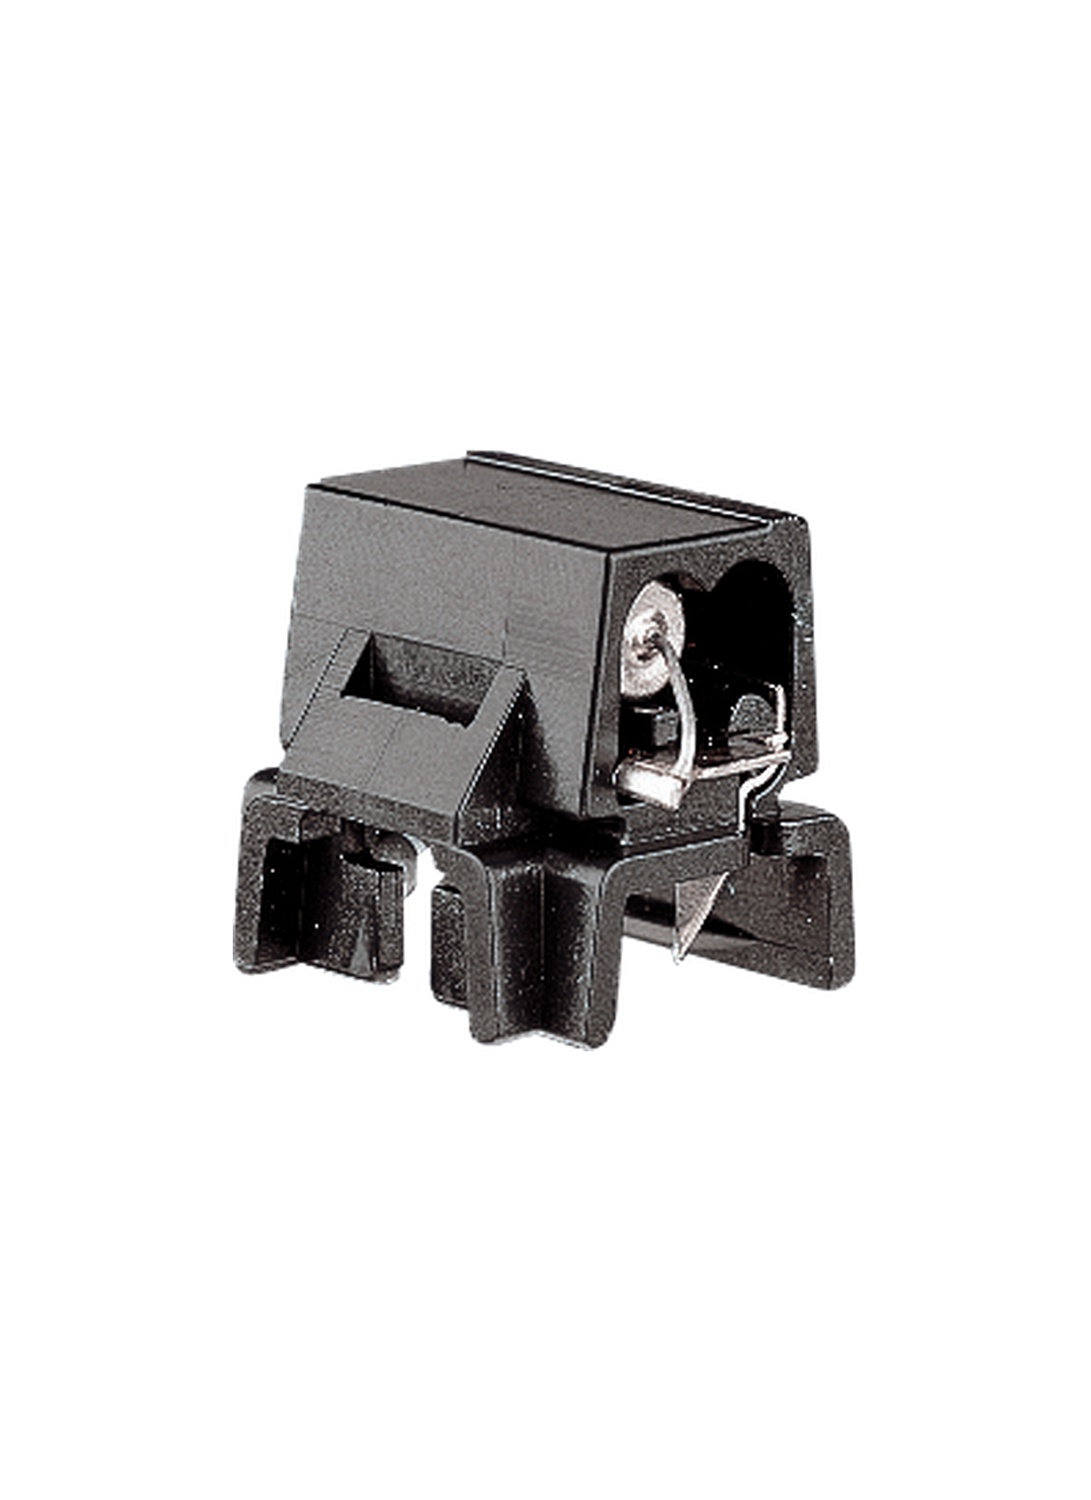 Black Fused Plug from the Fused Plug collection by Ambiance 9488 12